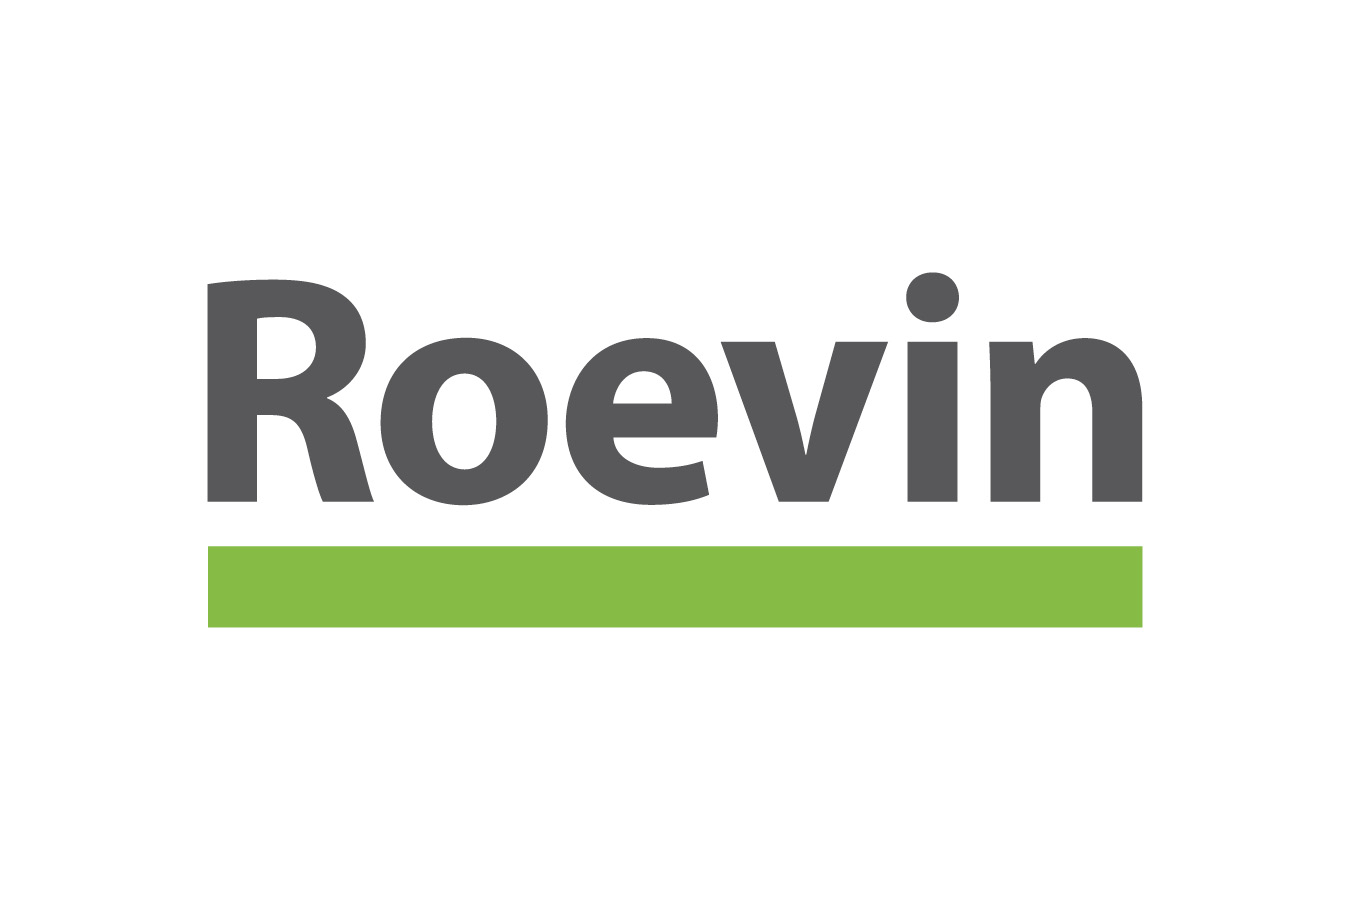 Roevin